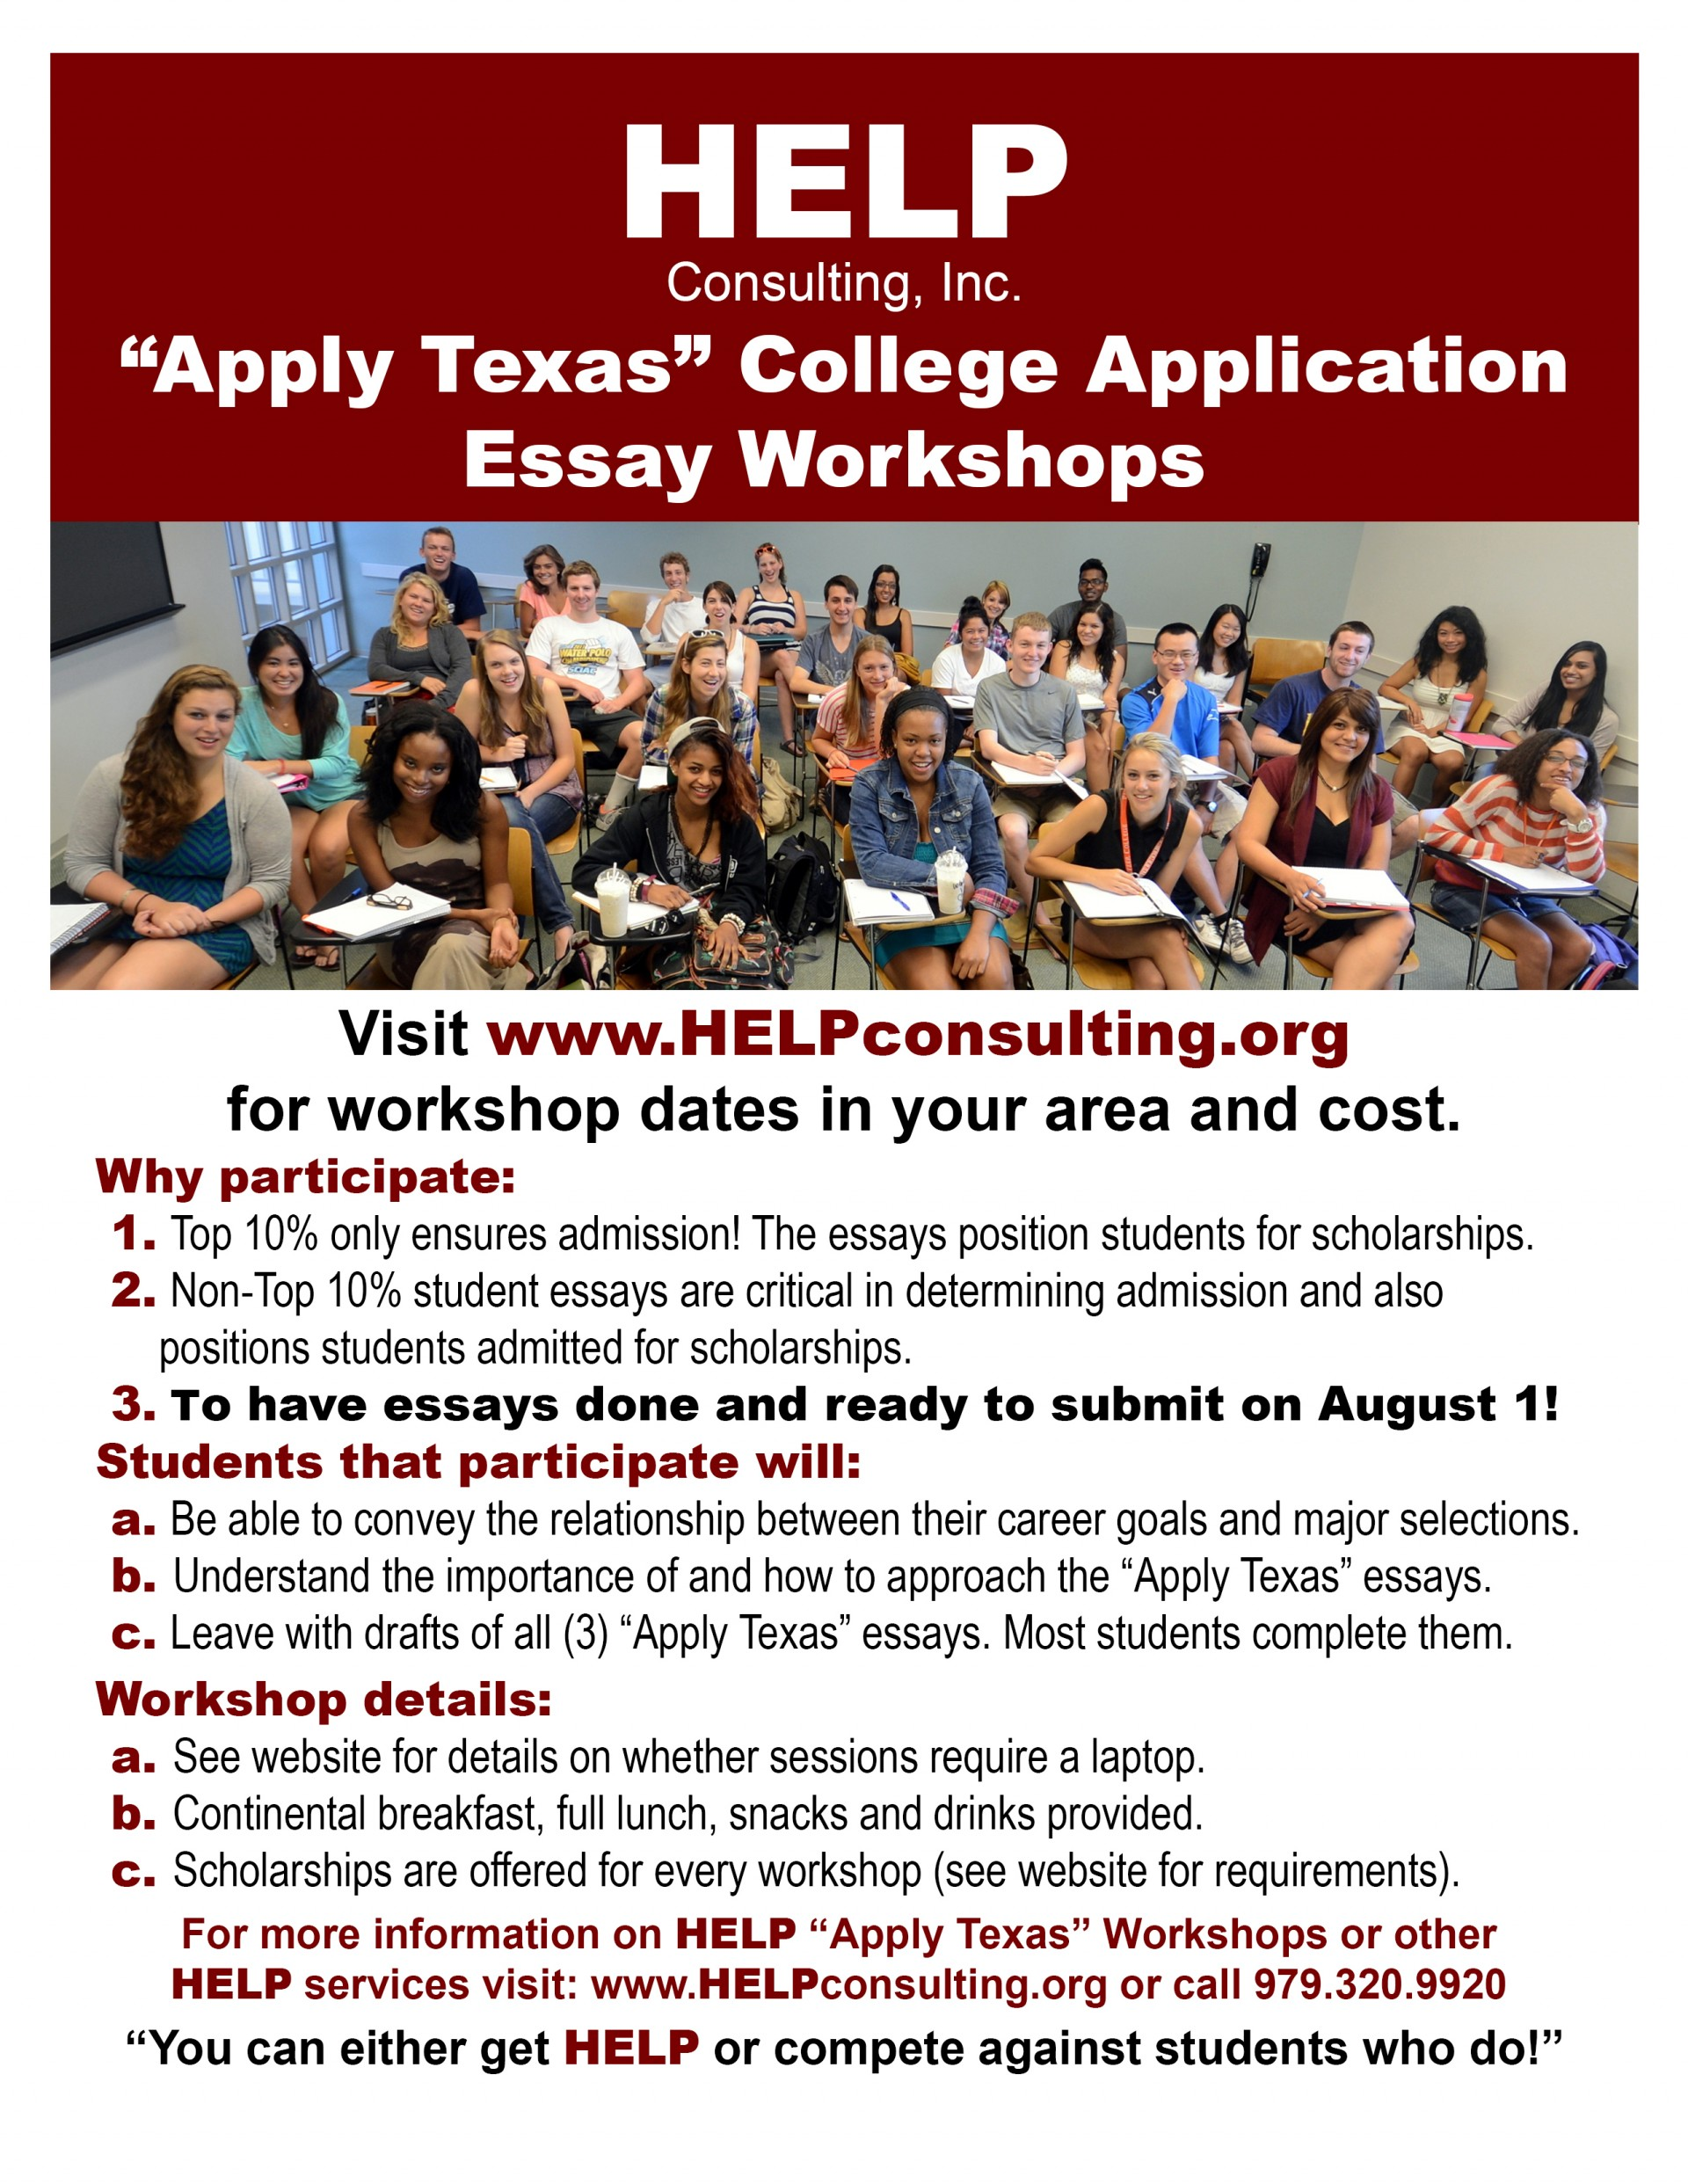 011 Apply Texas Essay Prompts Example Help Ap Tx Flyer Top Examples A B And C 1920